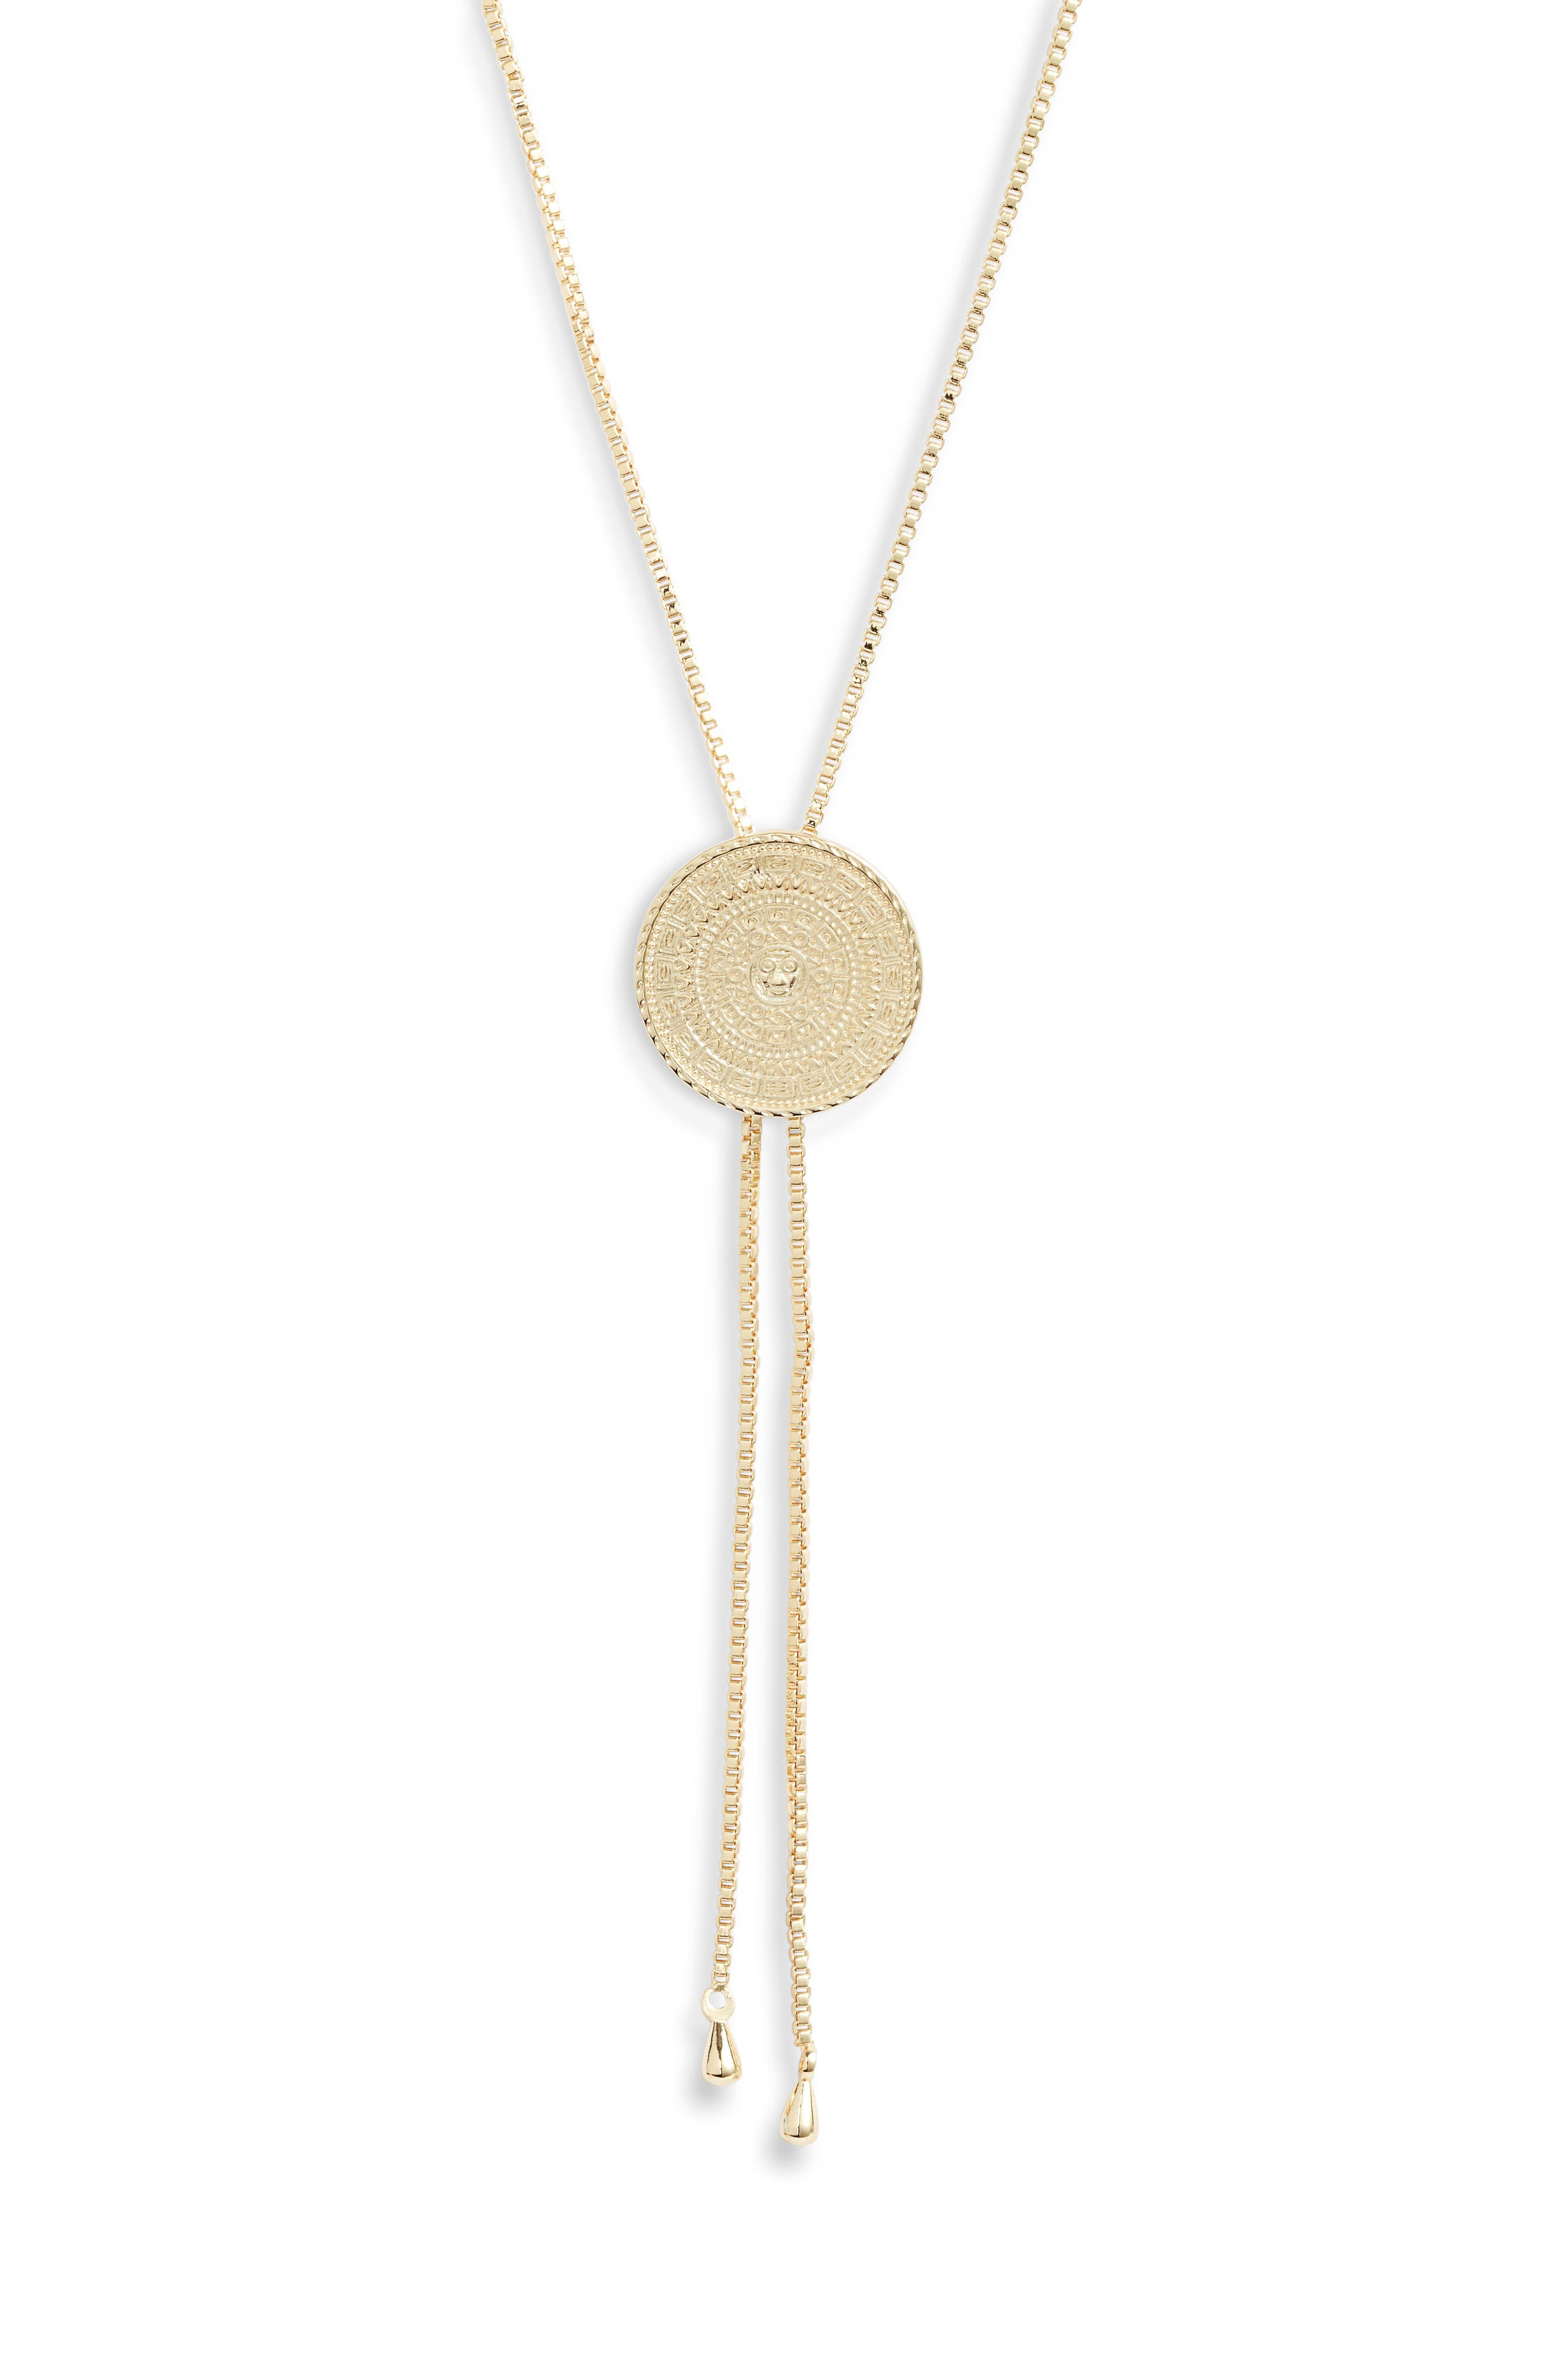 An intricately embossed pendant gleams on a bolo-style necklace that\\\'s a sophisticated addition to any look. Style Name: Sterling Forever Bolo Necklace. Style Number: 5868279. Available in stores.